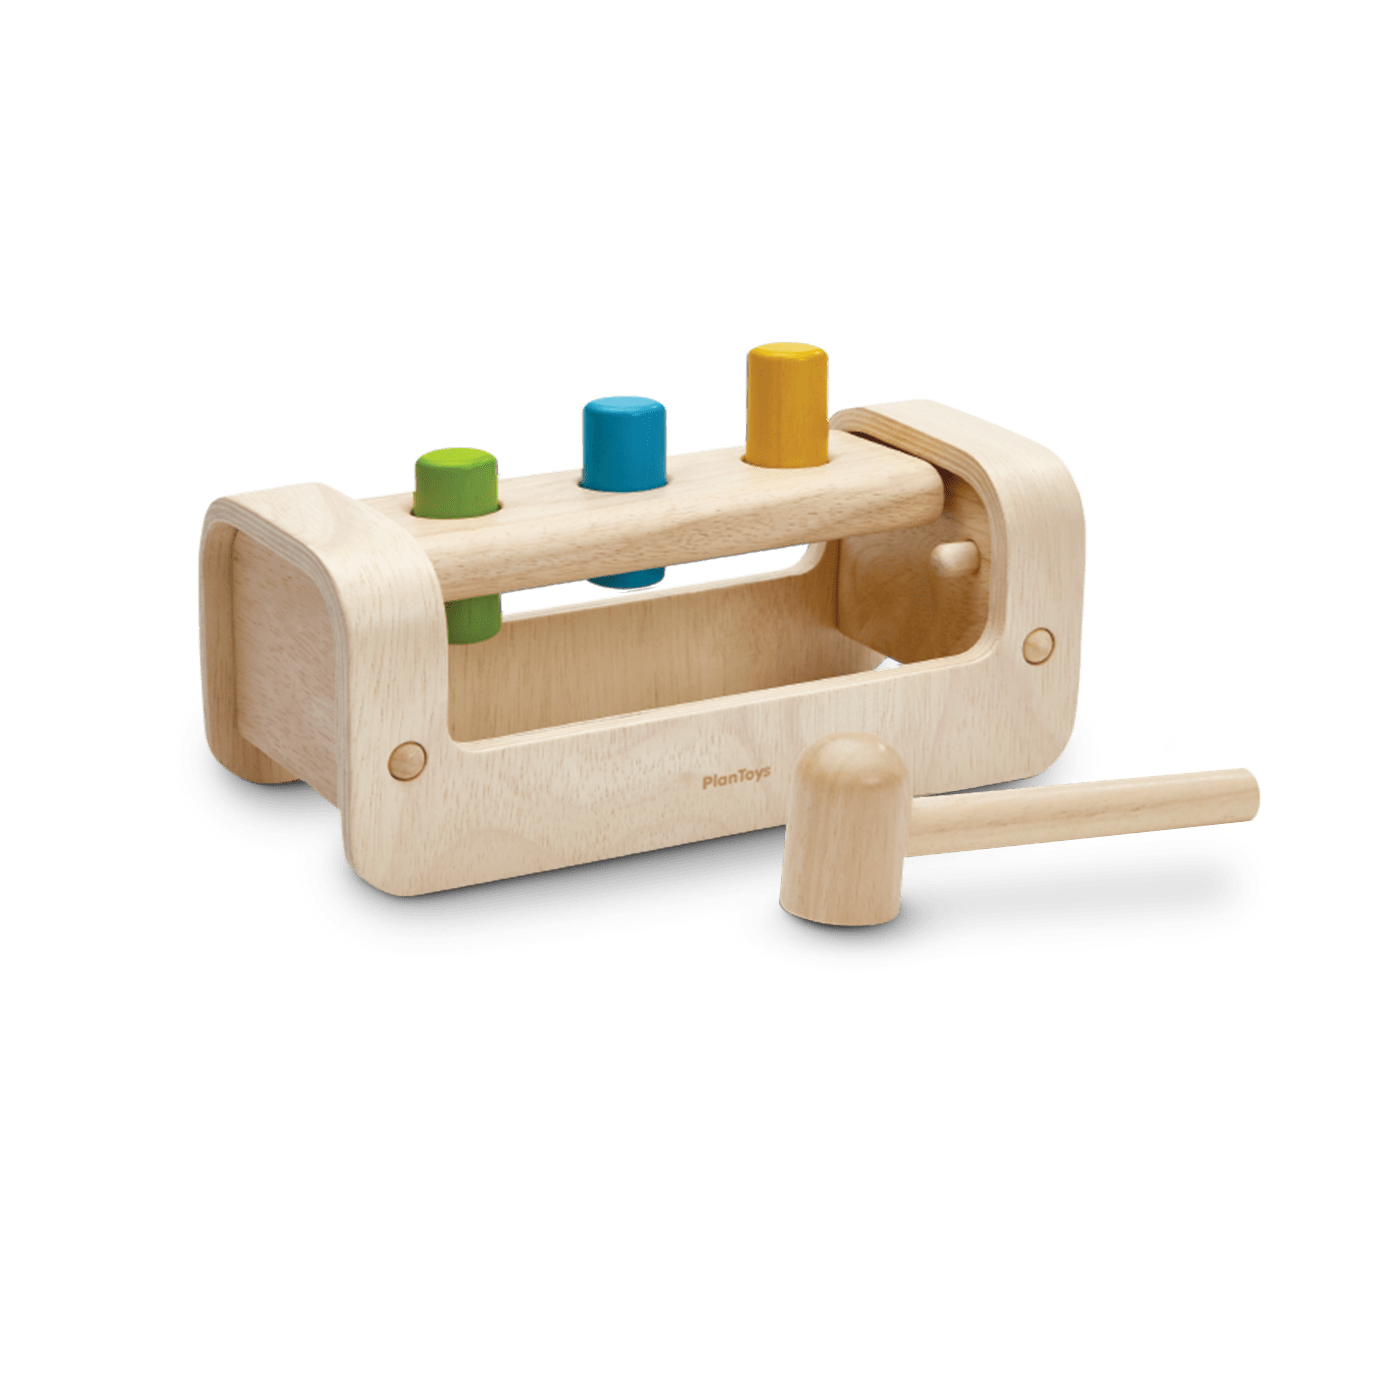 5397_PlanToys_POUNDING_BENCH_Learning_and_Education_Fine_Motor_Coordination_Visual_Mathematical_Language_and_Communications_12m_Wooden_toys_Education_toys_Safety_Toys_Non-toxic_0.png